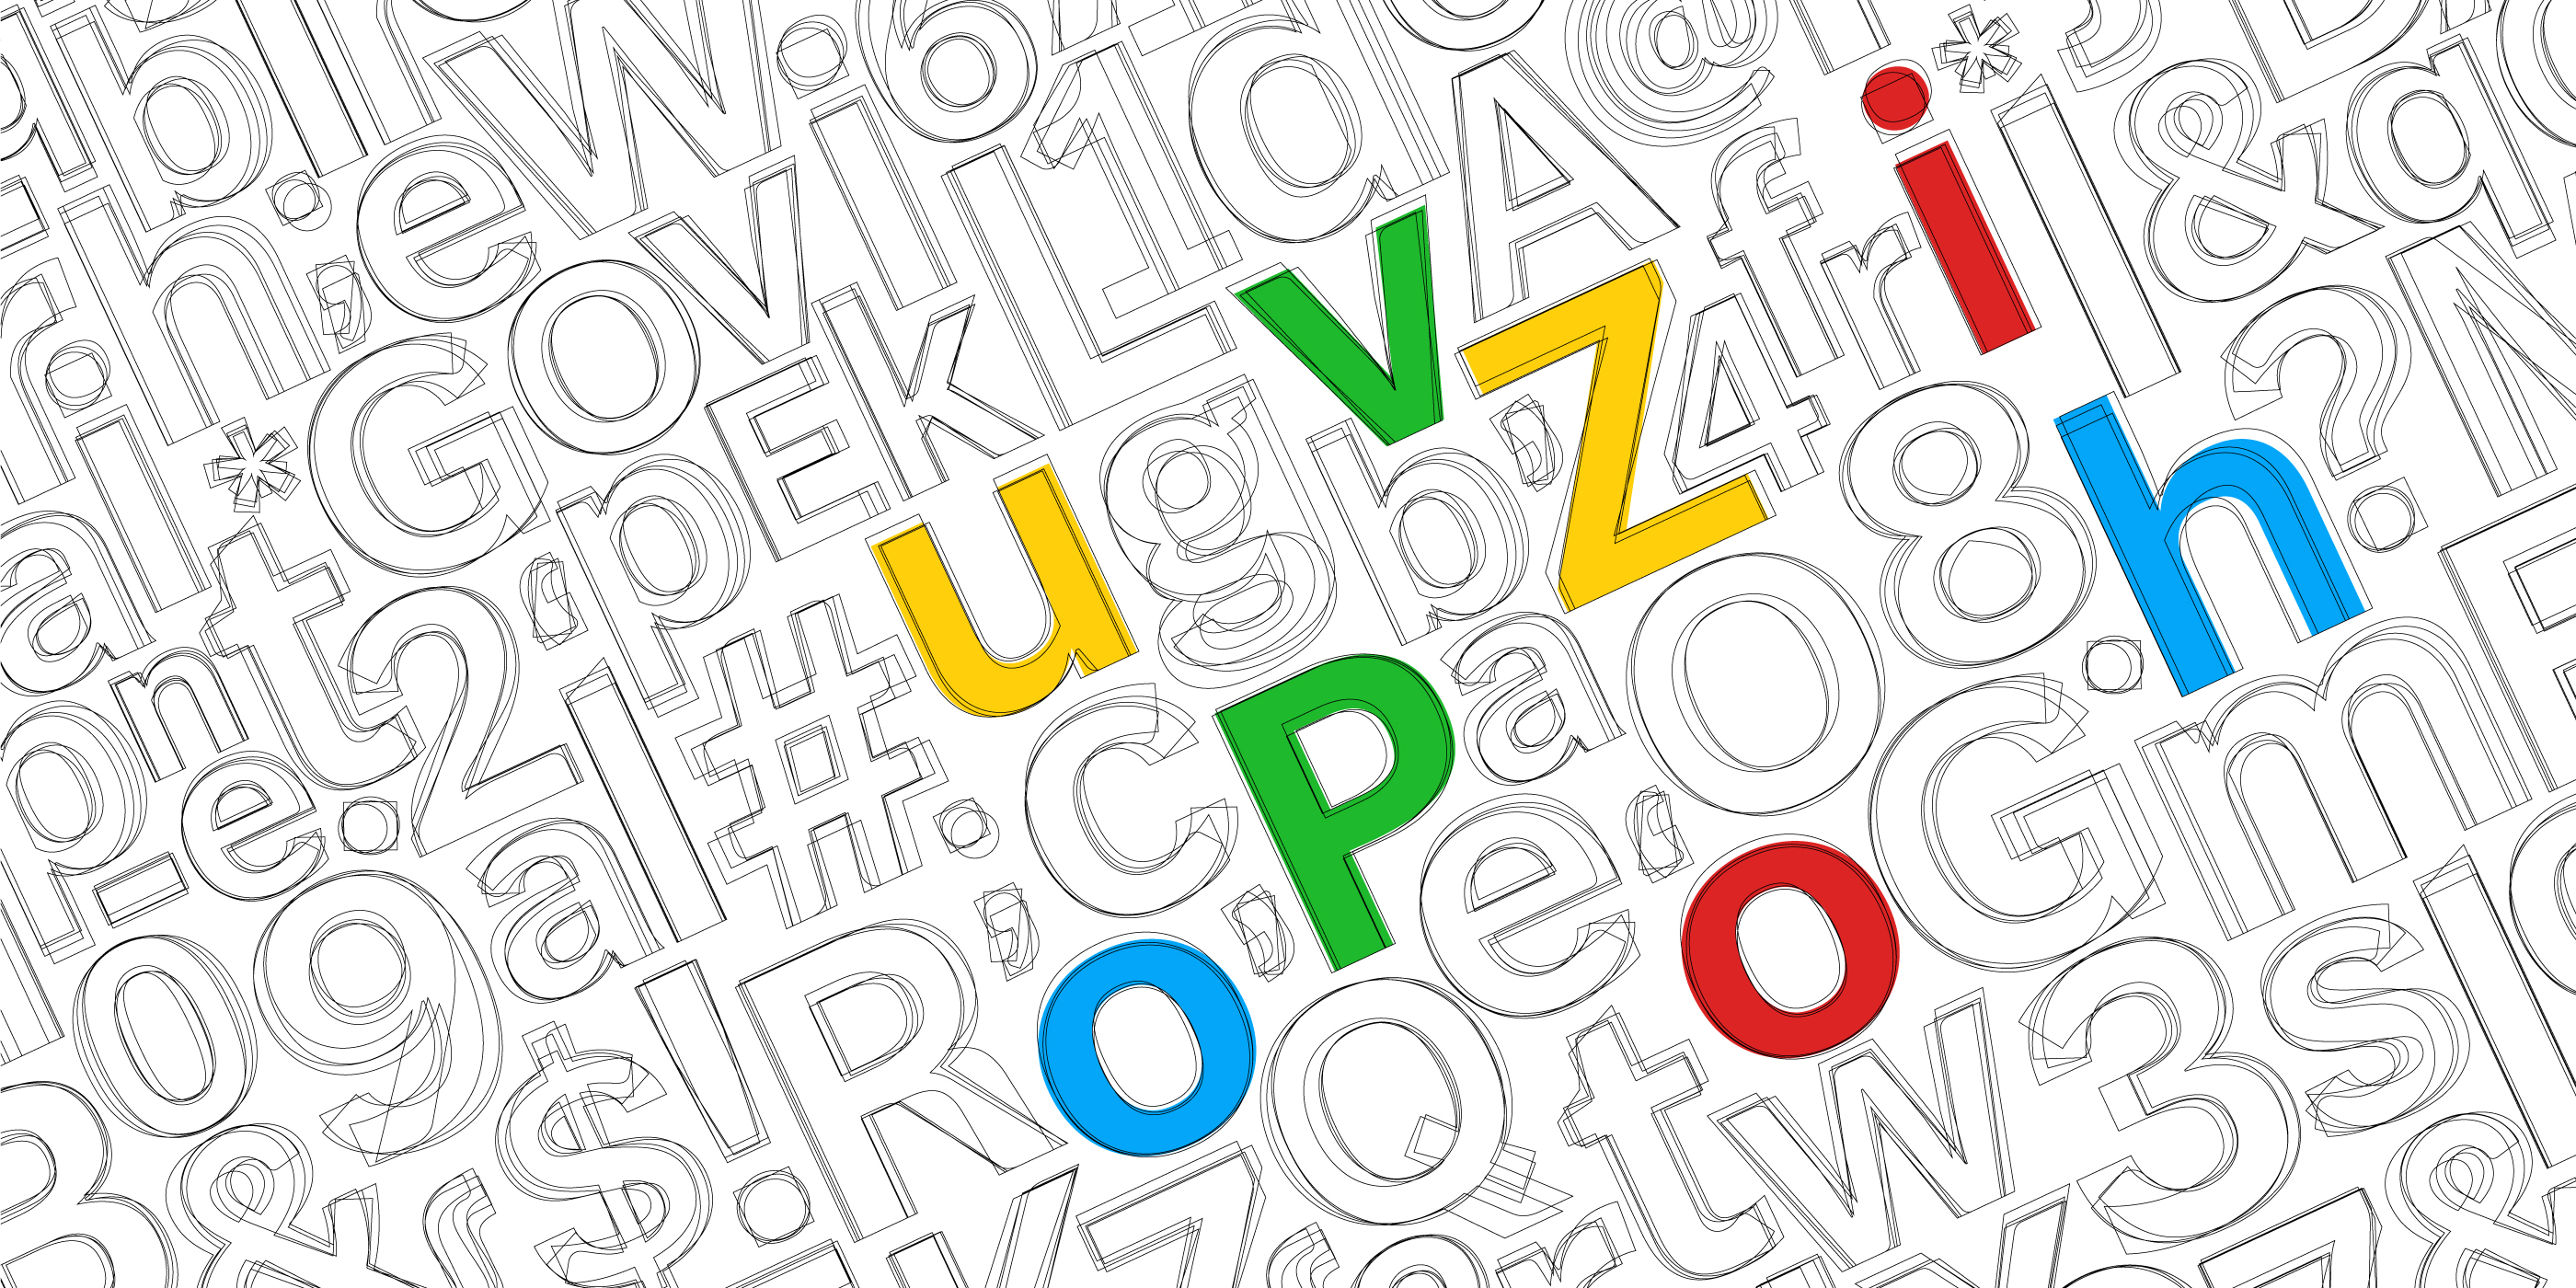 Introducing Puvi–A down-to-earth font from Zoho